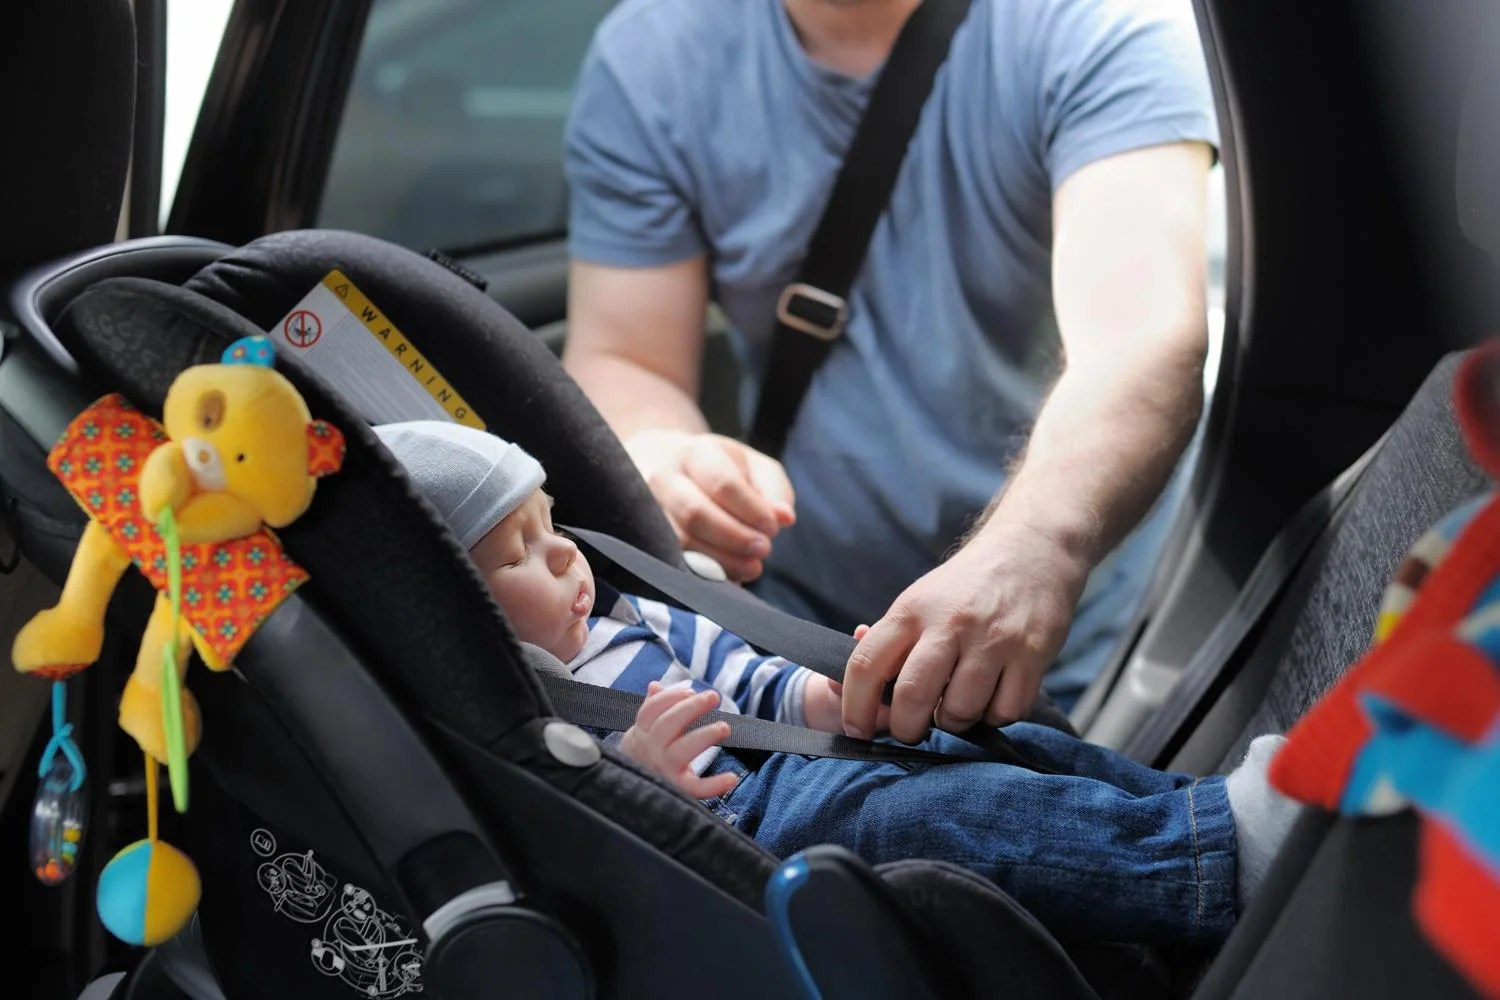 Rear Facing Car Seat Age 4 Uk Child Car Seat Laws Everything You Need To Know About